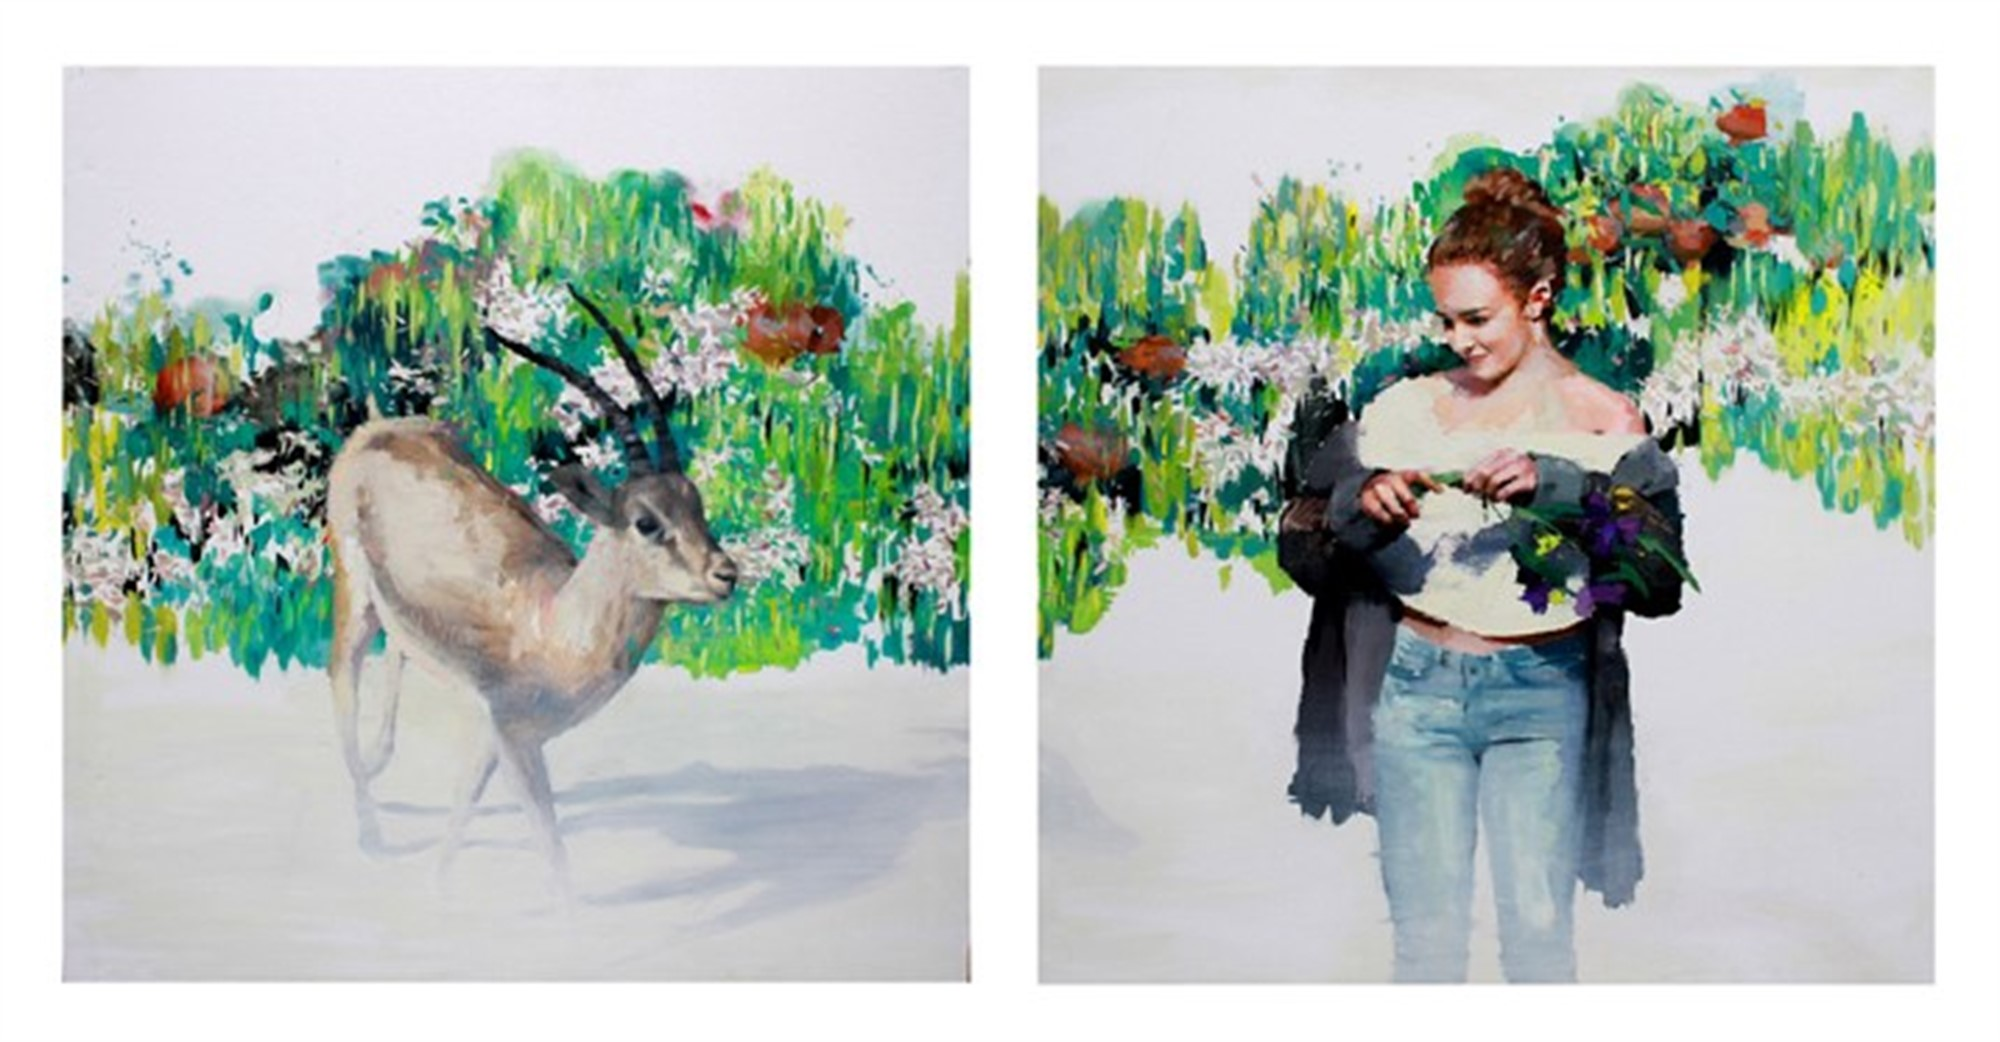 Gazella of Unexpected Love (diptych) by Susana Ragel